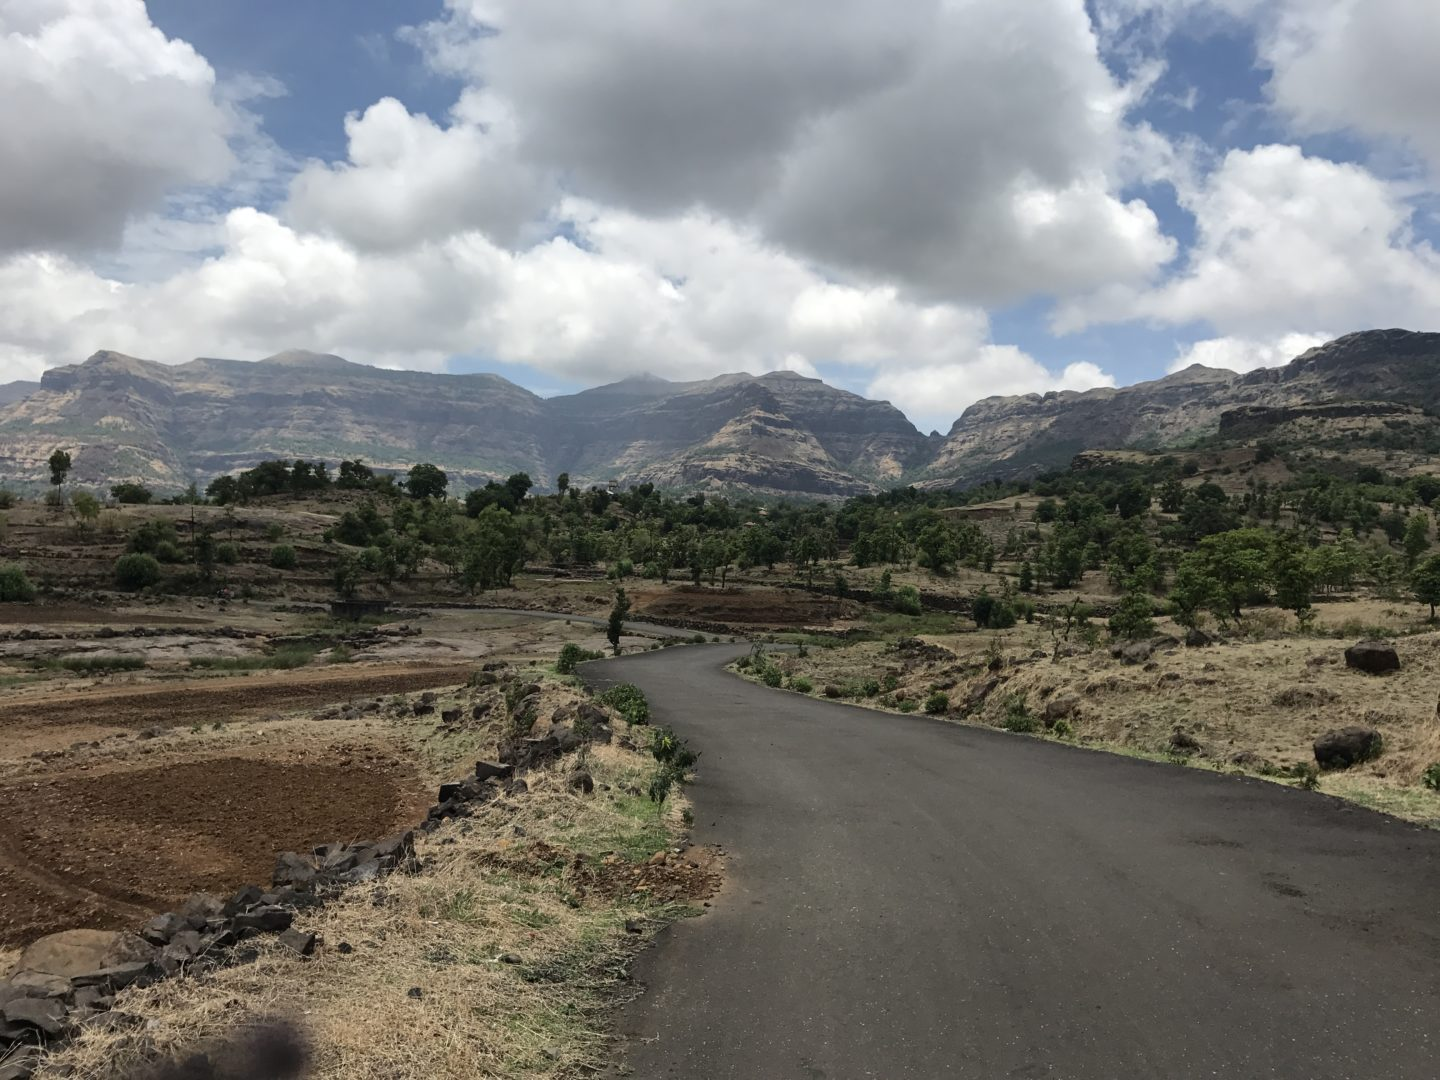 bhandardara winding roads